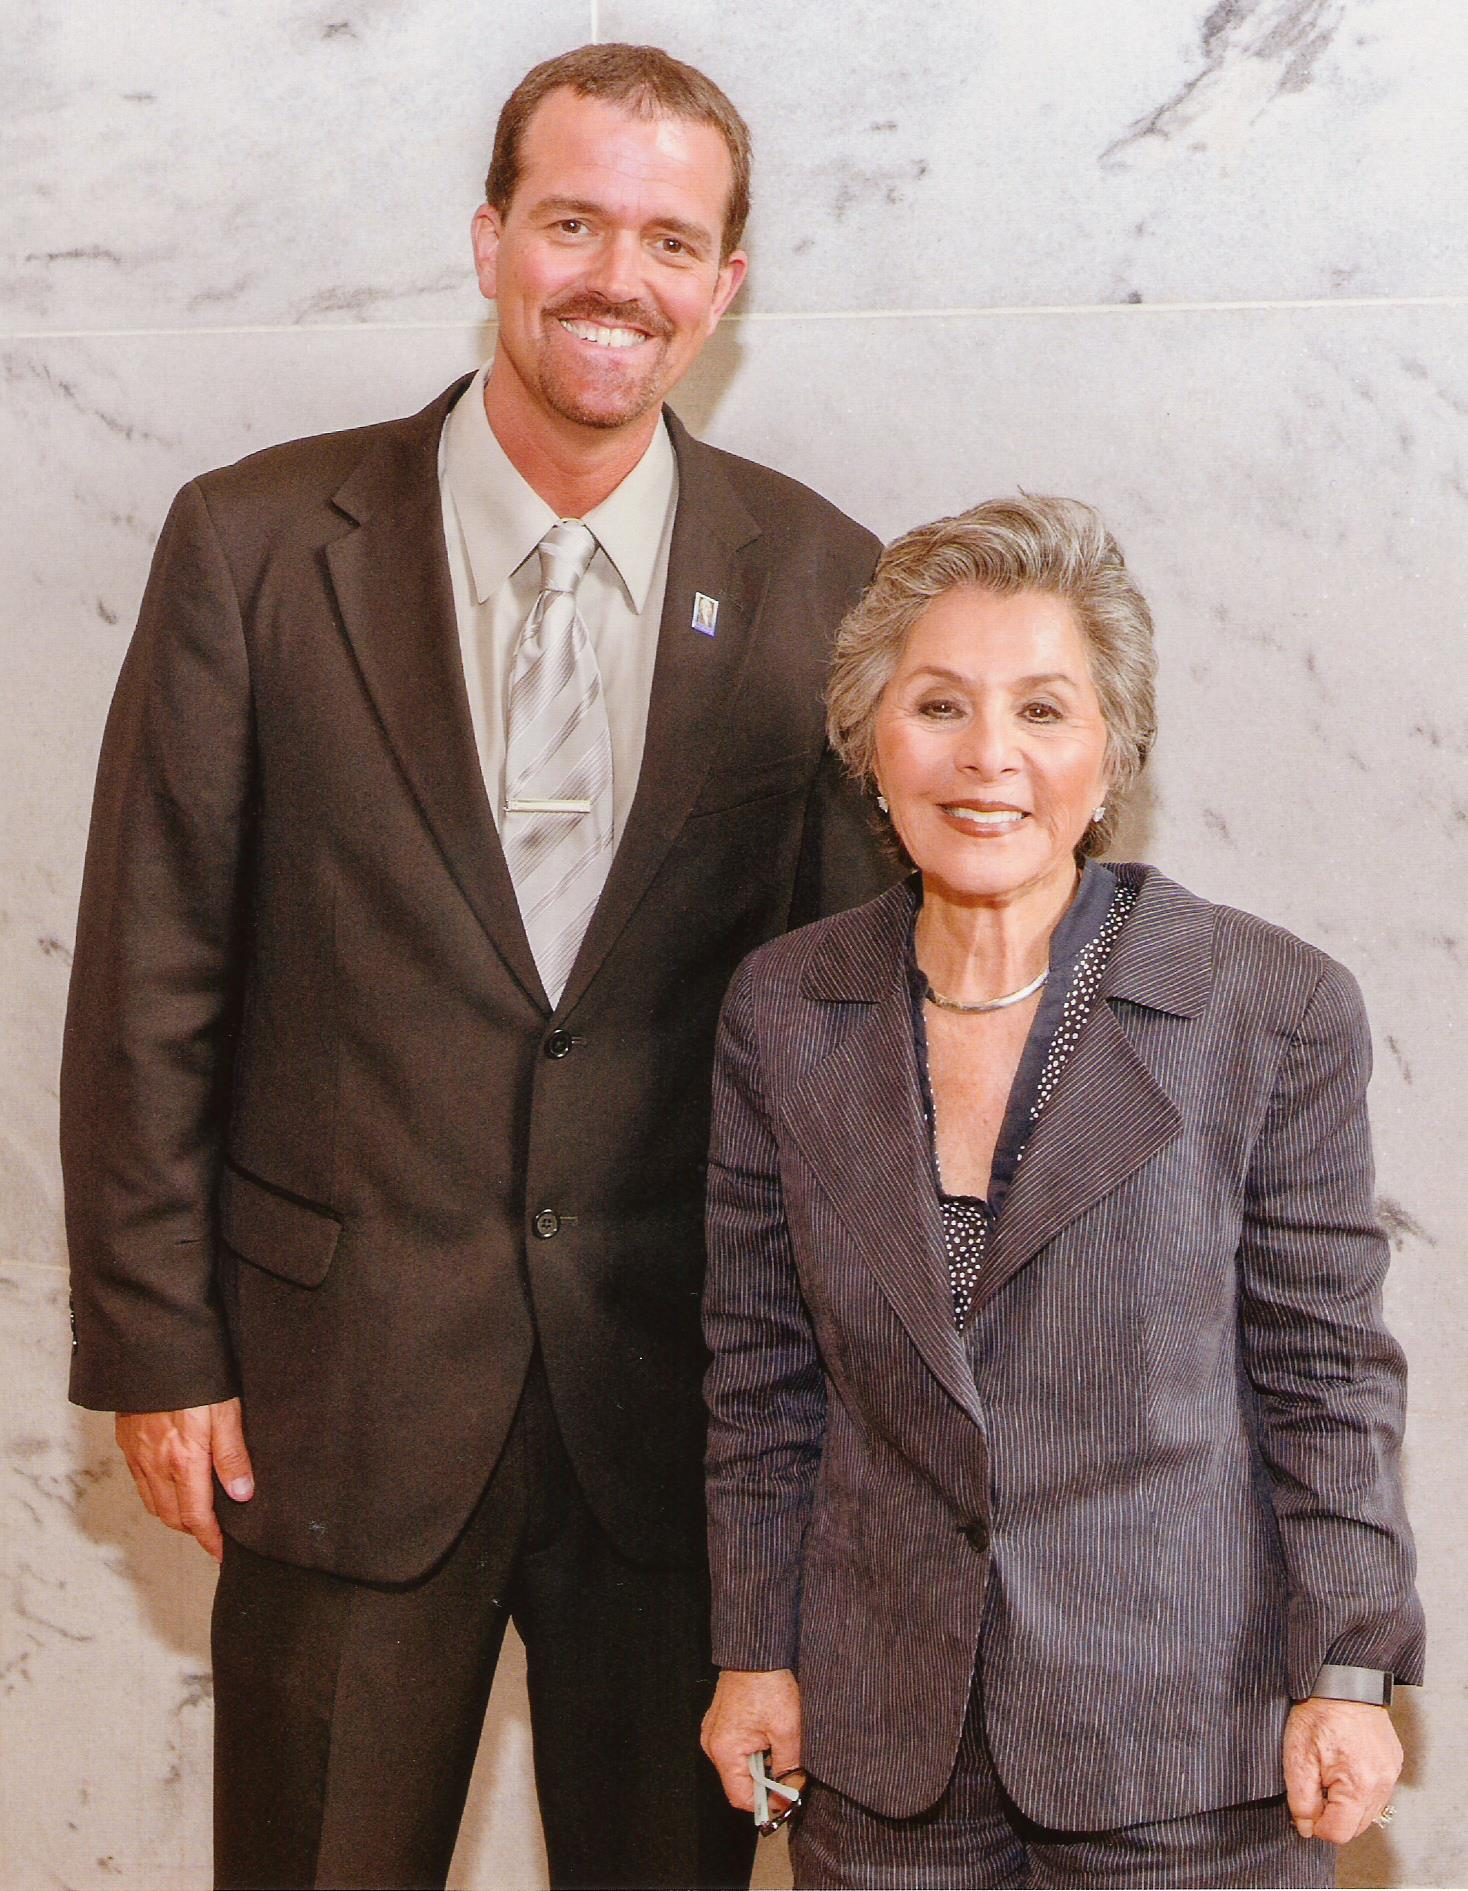 Sen. Boxer and Me - Summer 2015